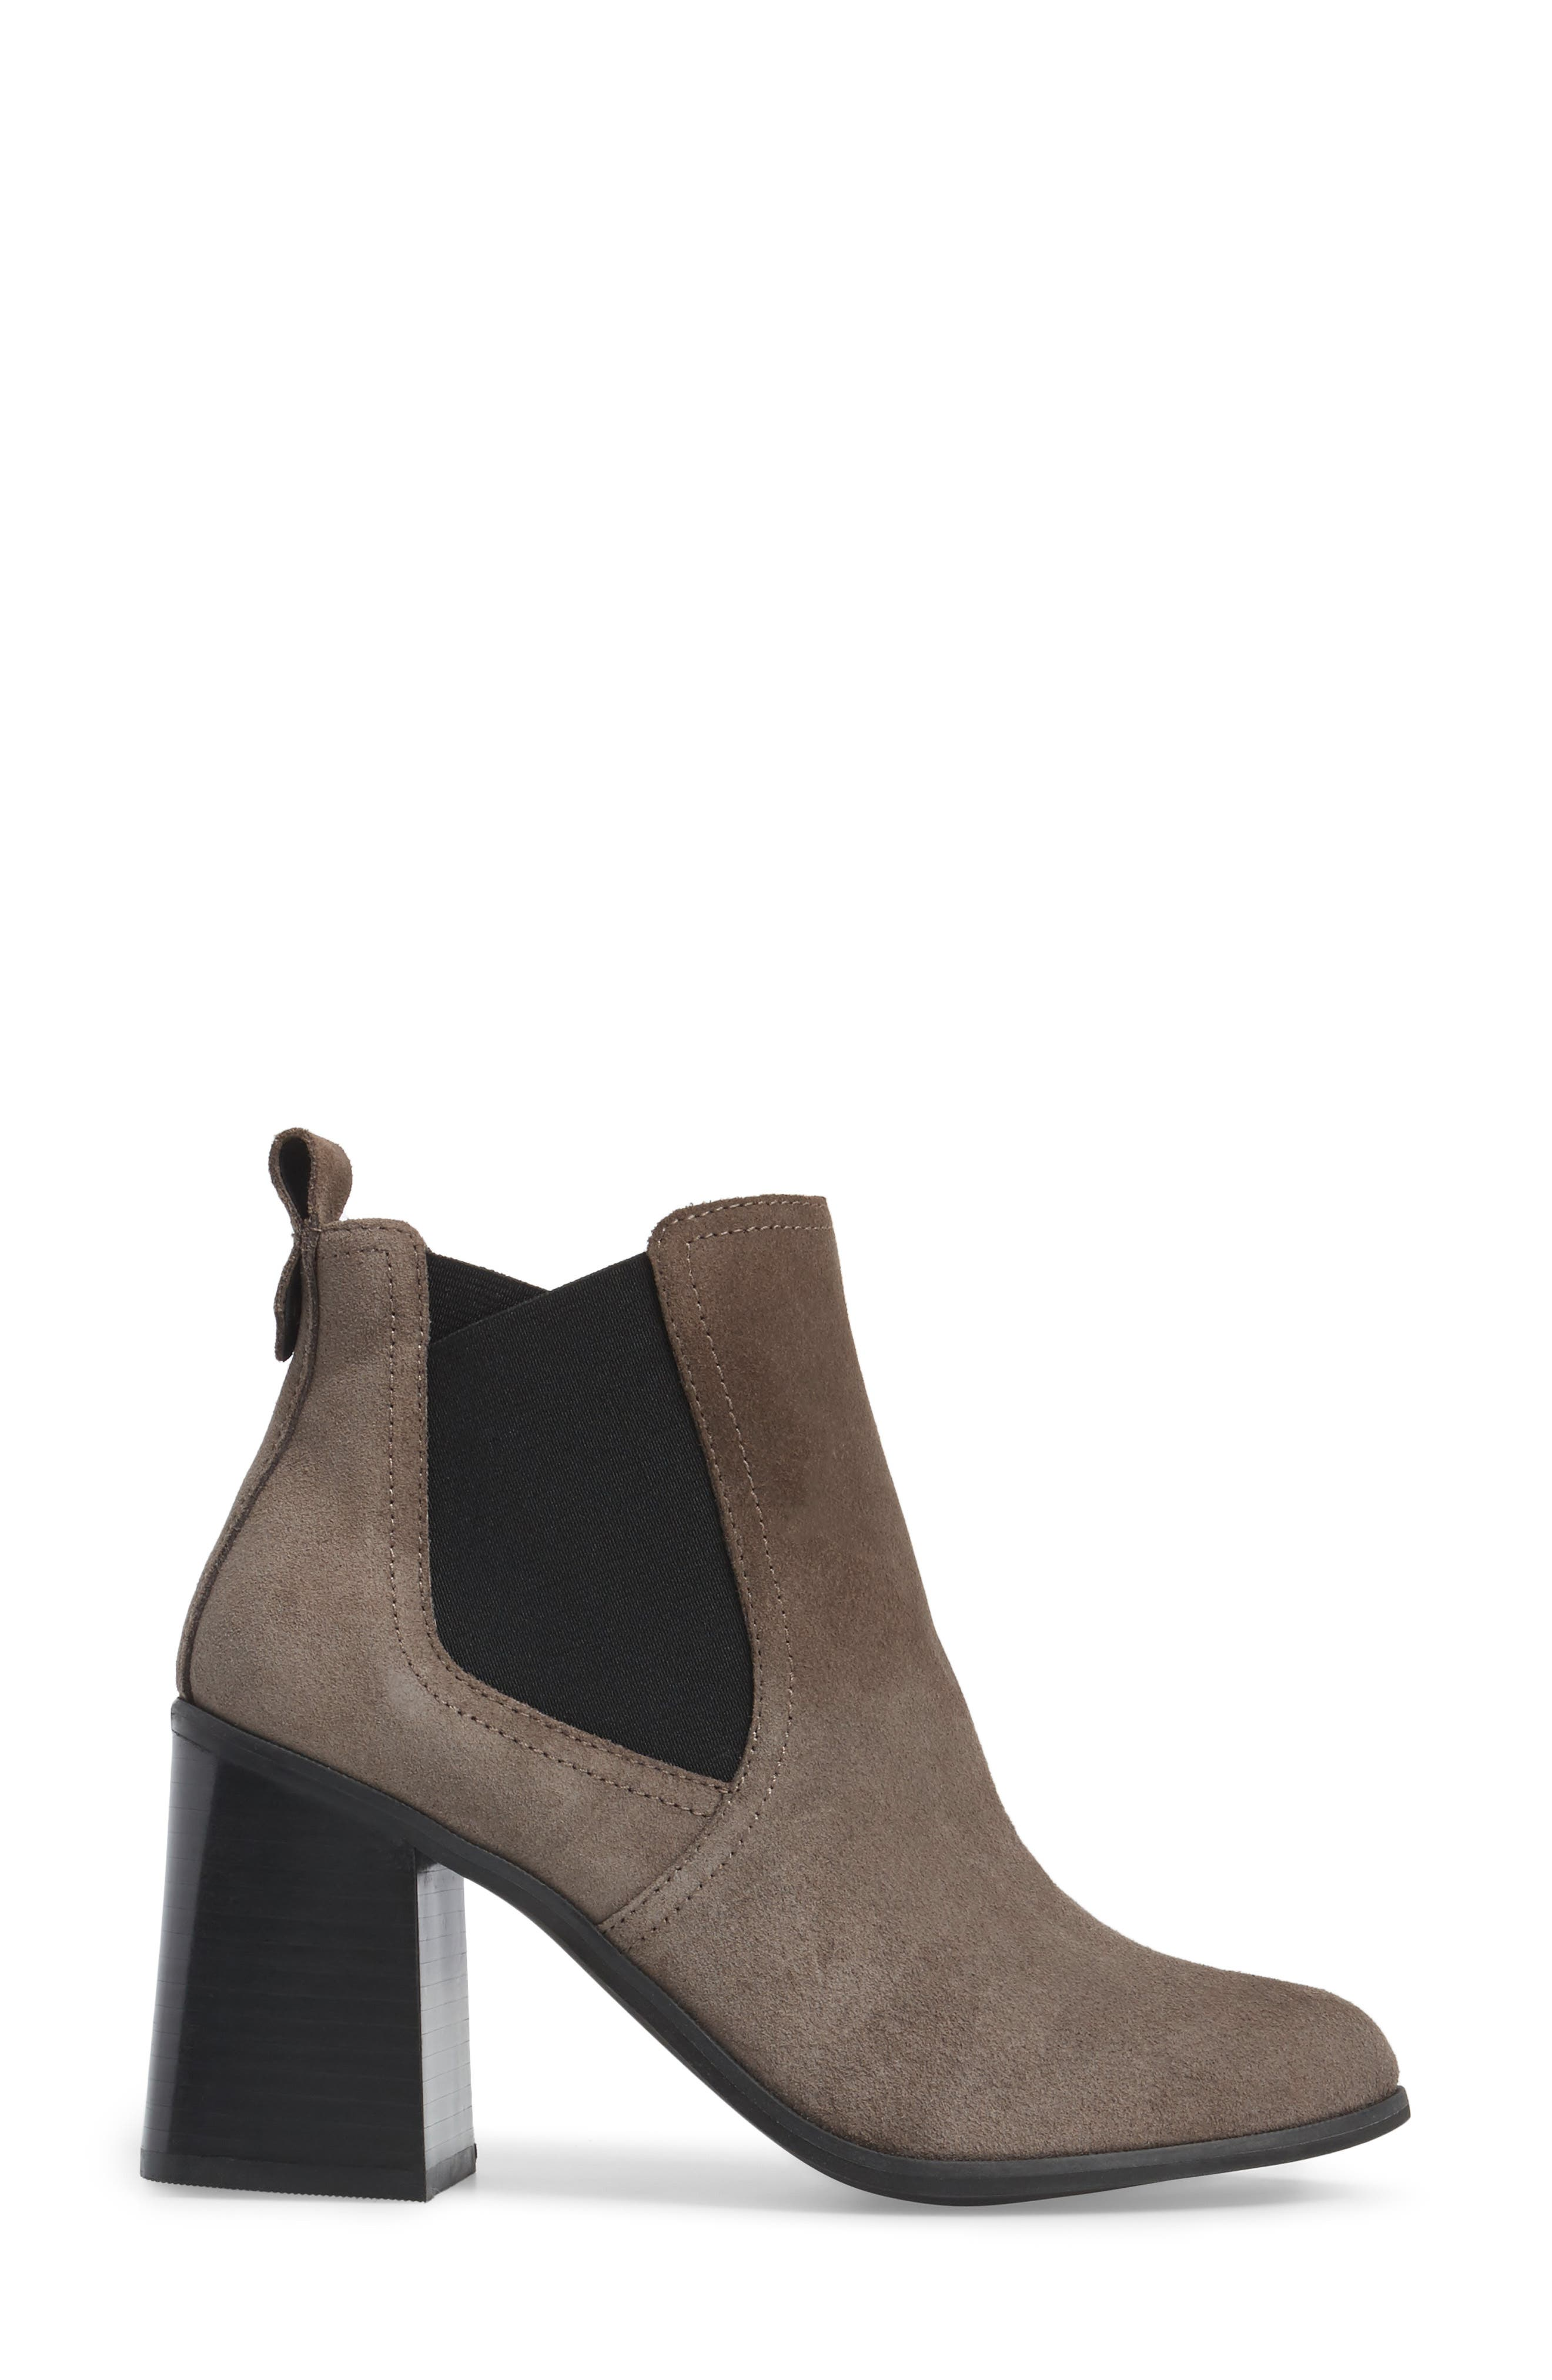 Quinn Flared Heel Chelsea Bootie,                             Alternate thumbnail 13, color,